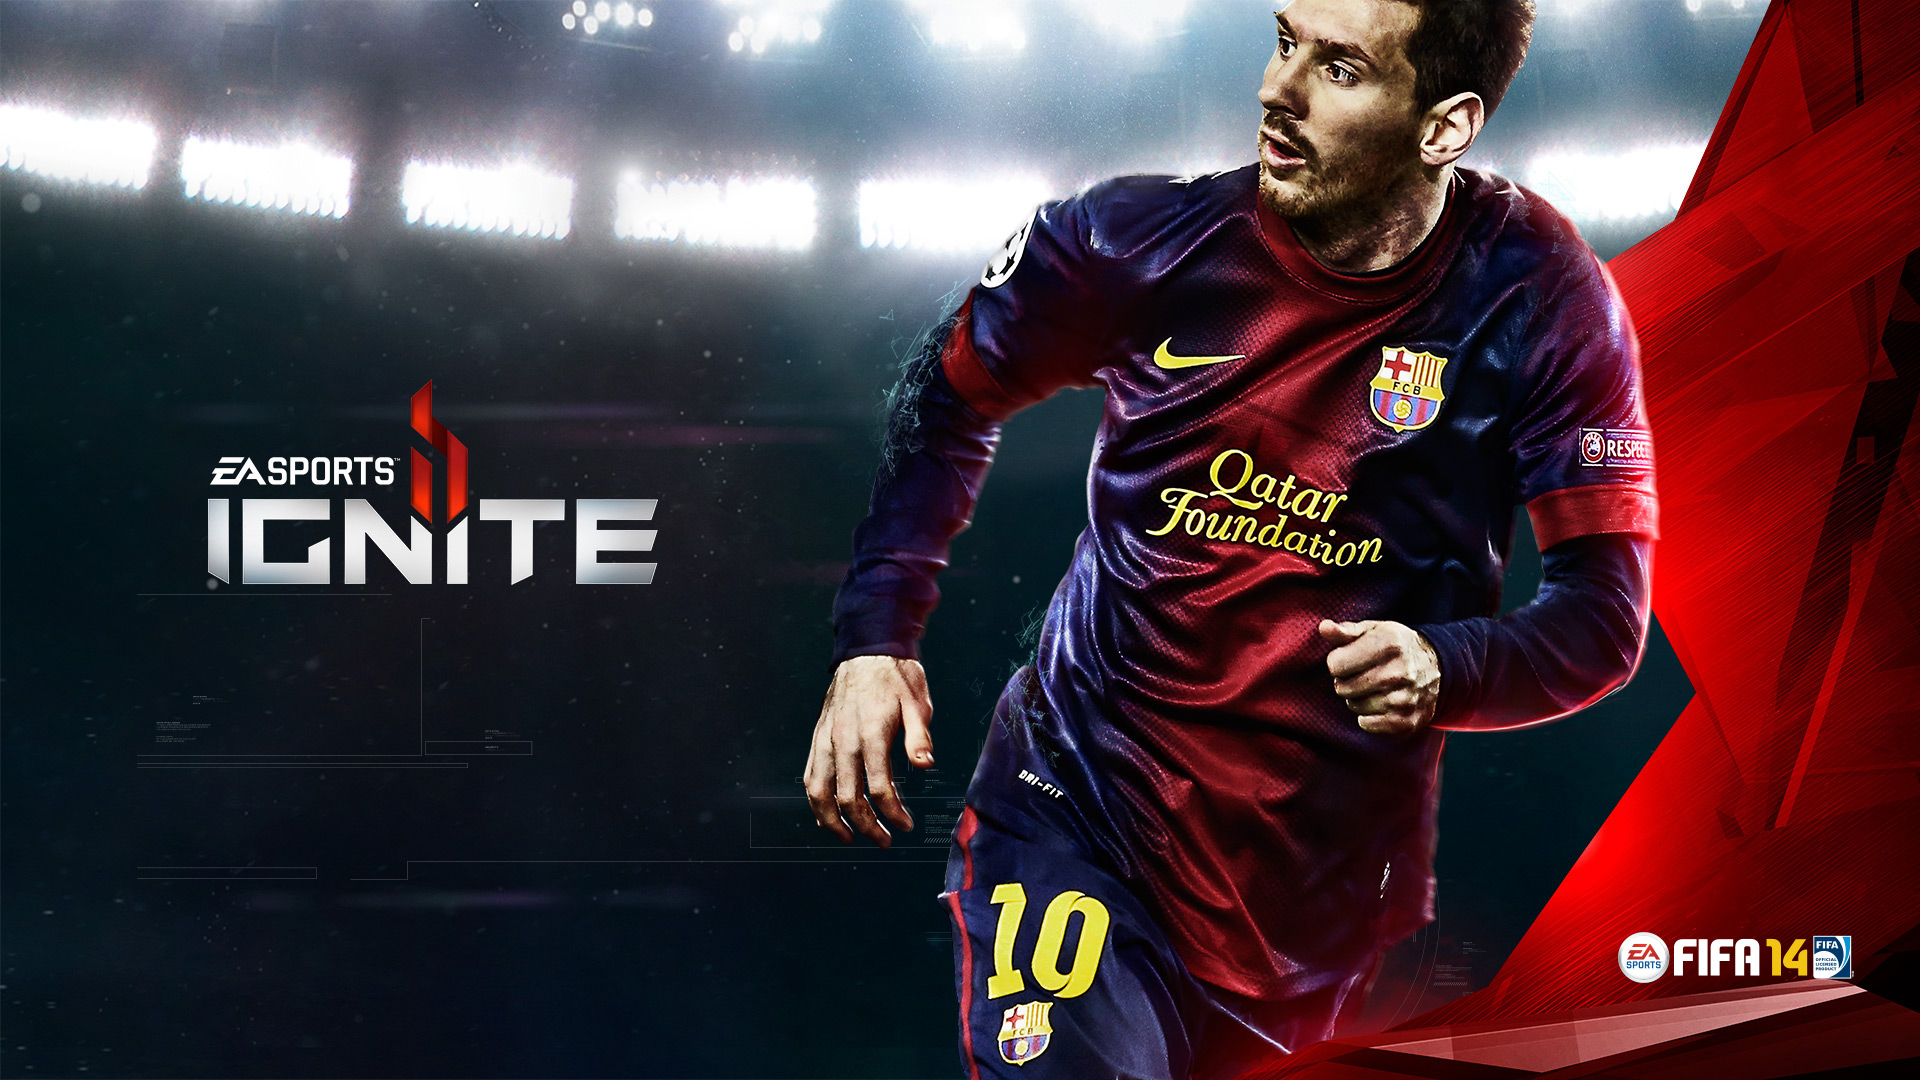 lionel messi fifa  desktop wallpaper football hd wallpapers